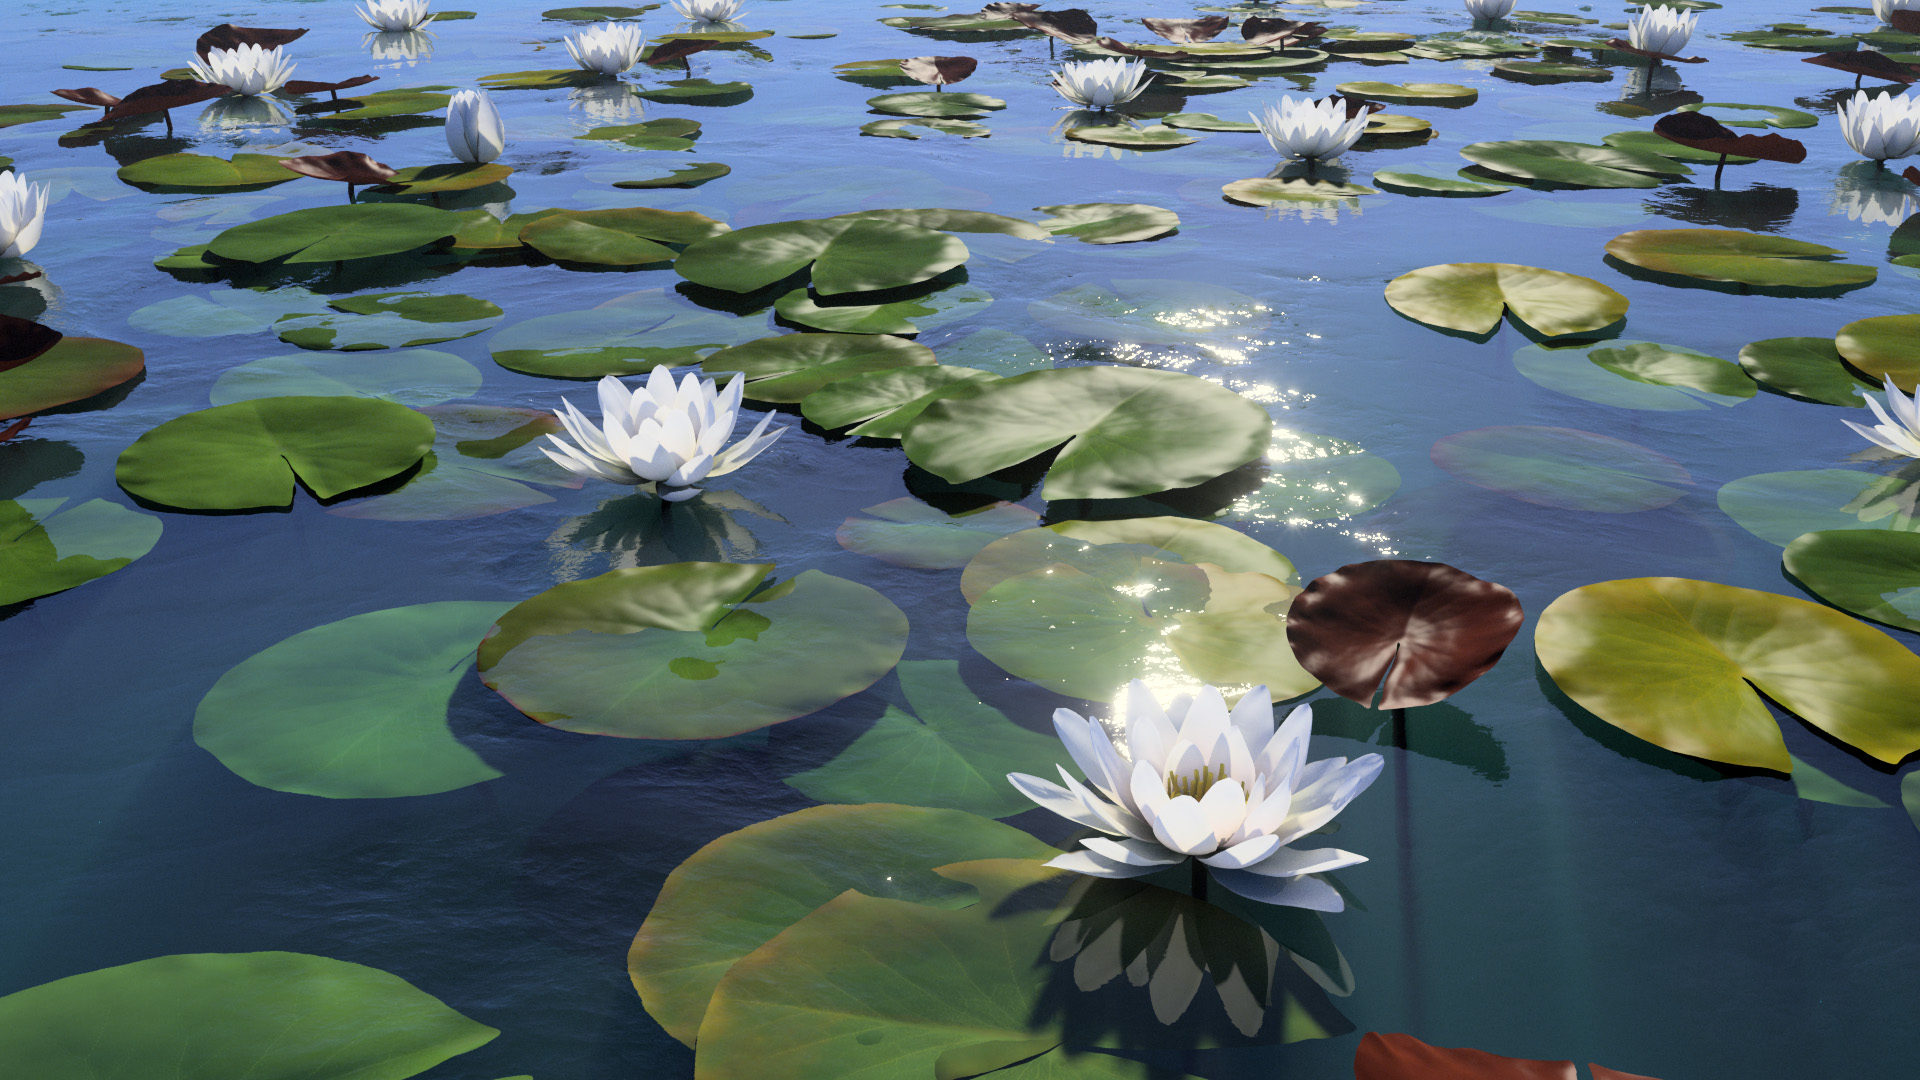 3D model of the White water lily Nymphaea alba